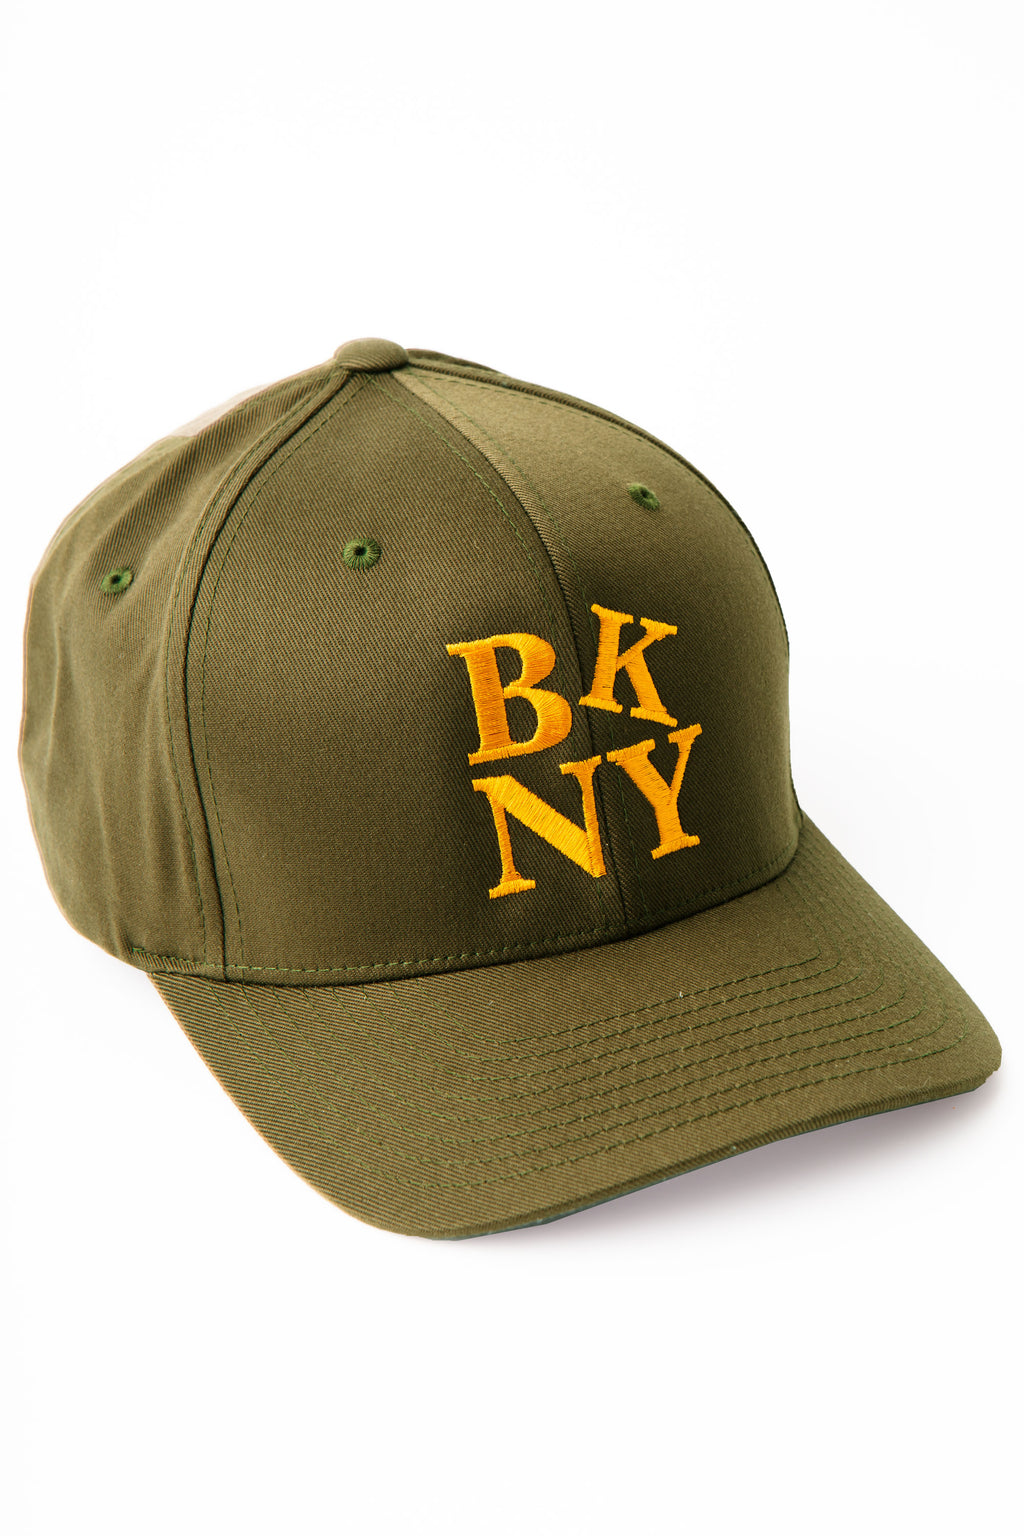 BKNY BASEBALL CAP OLIVE - BROOKLYN INDUSTRIES